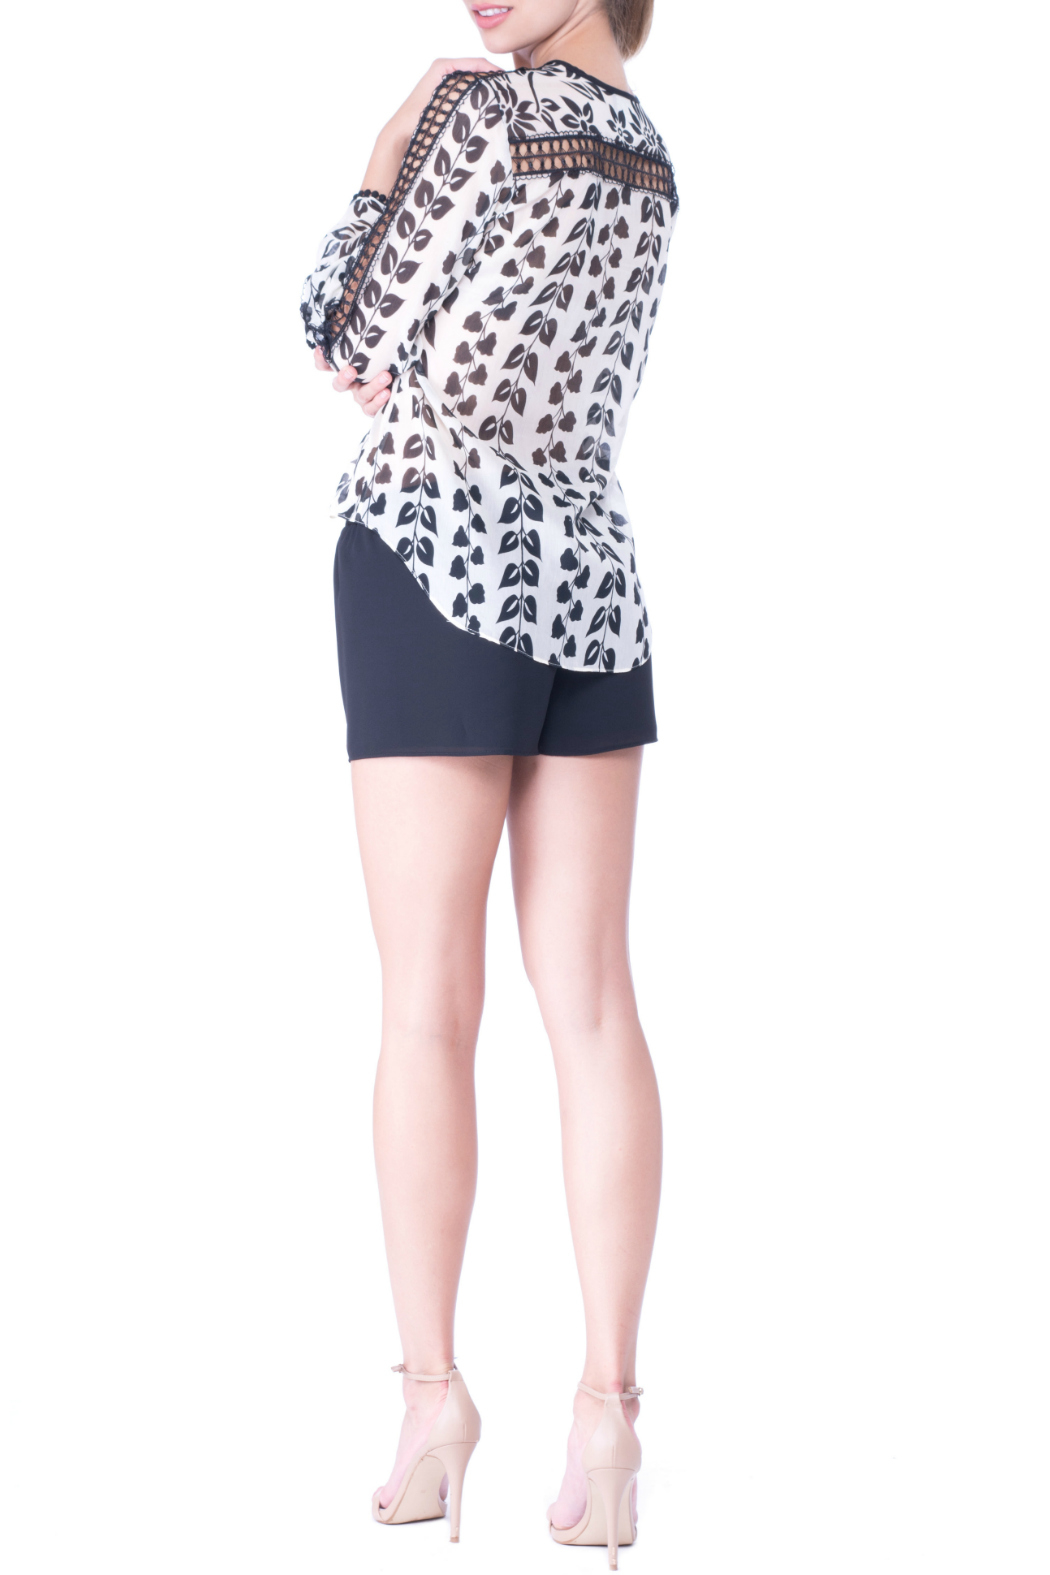 Atina Cristina Alice Printed Blouse with Lace Detail - Front Full Image